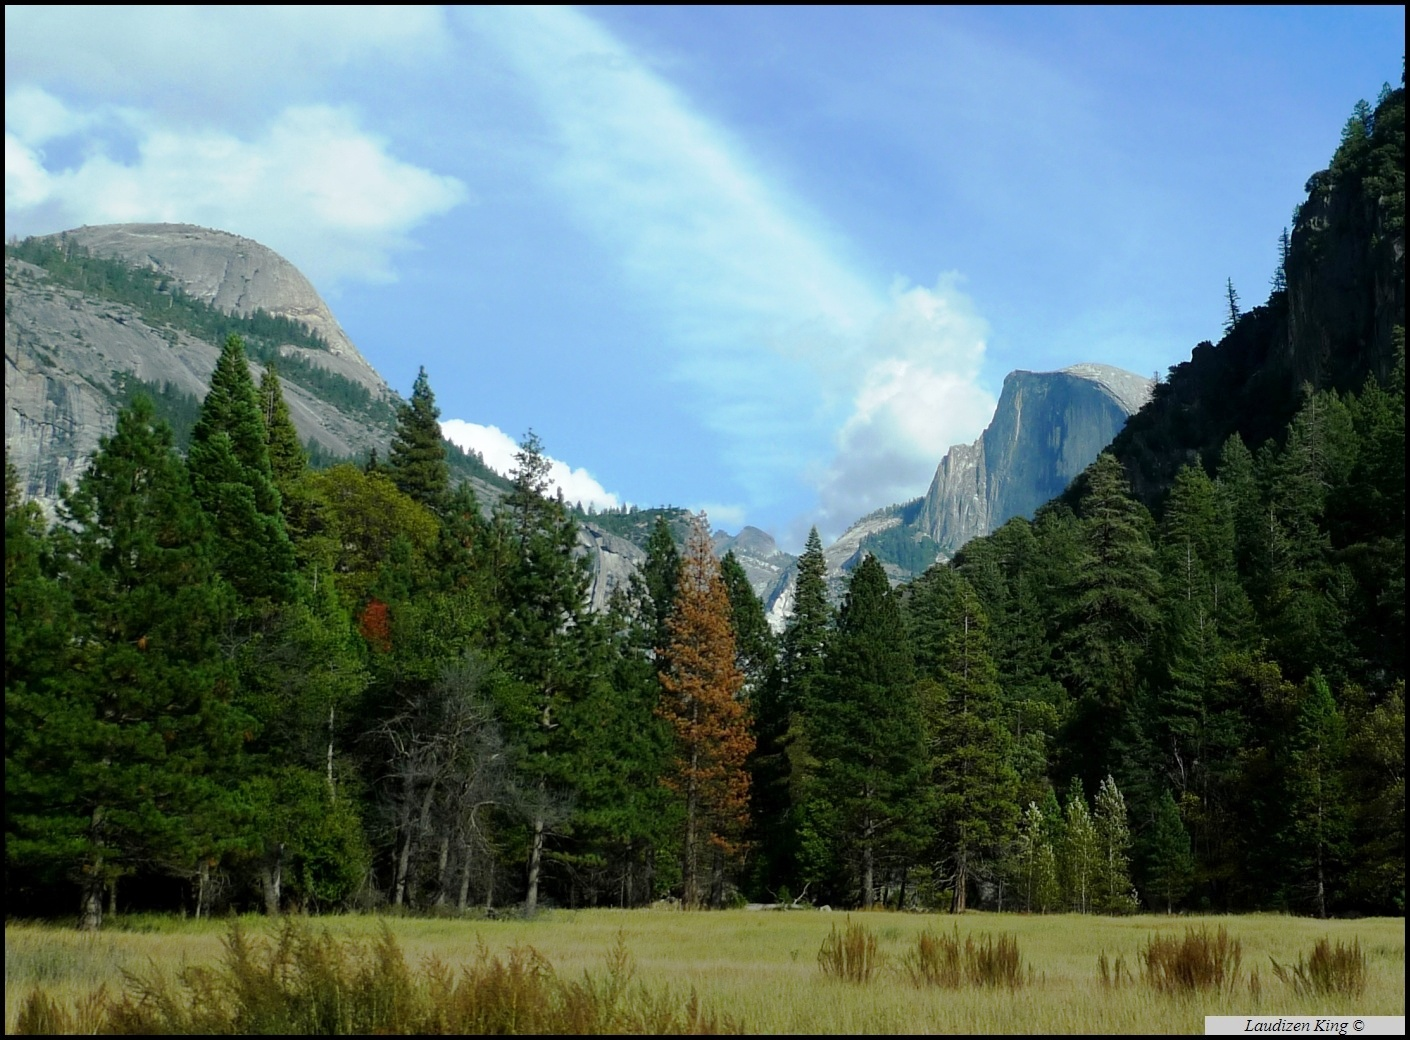 Yosemite Valley, Number 2 - October 2010